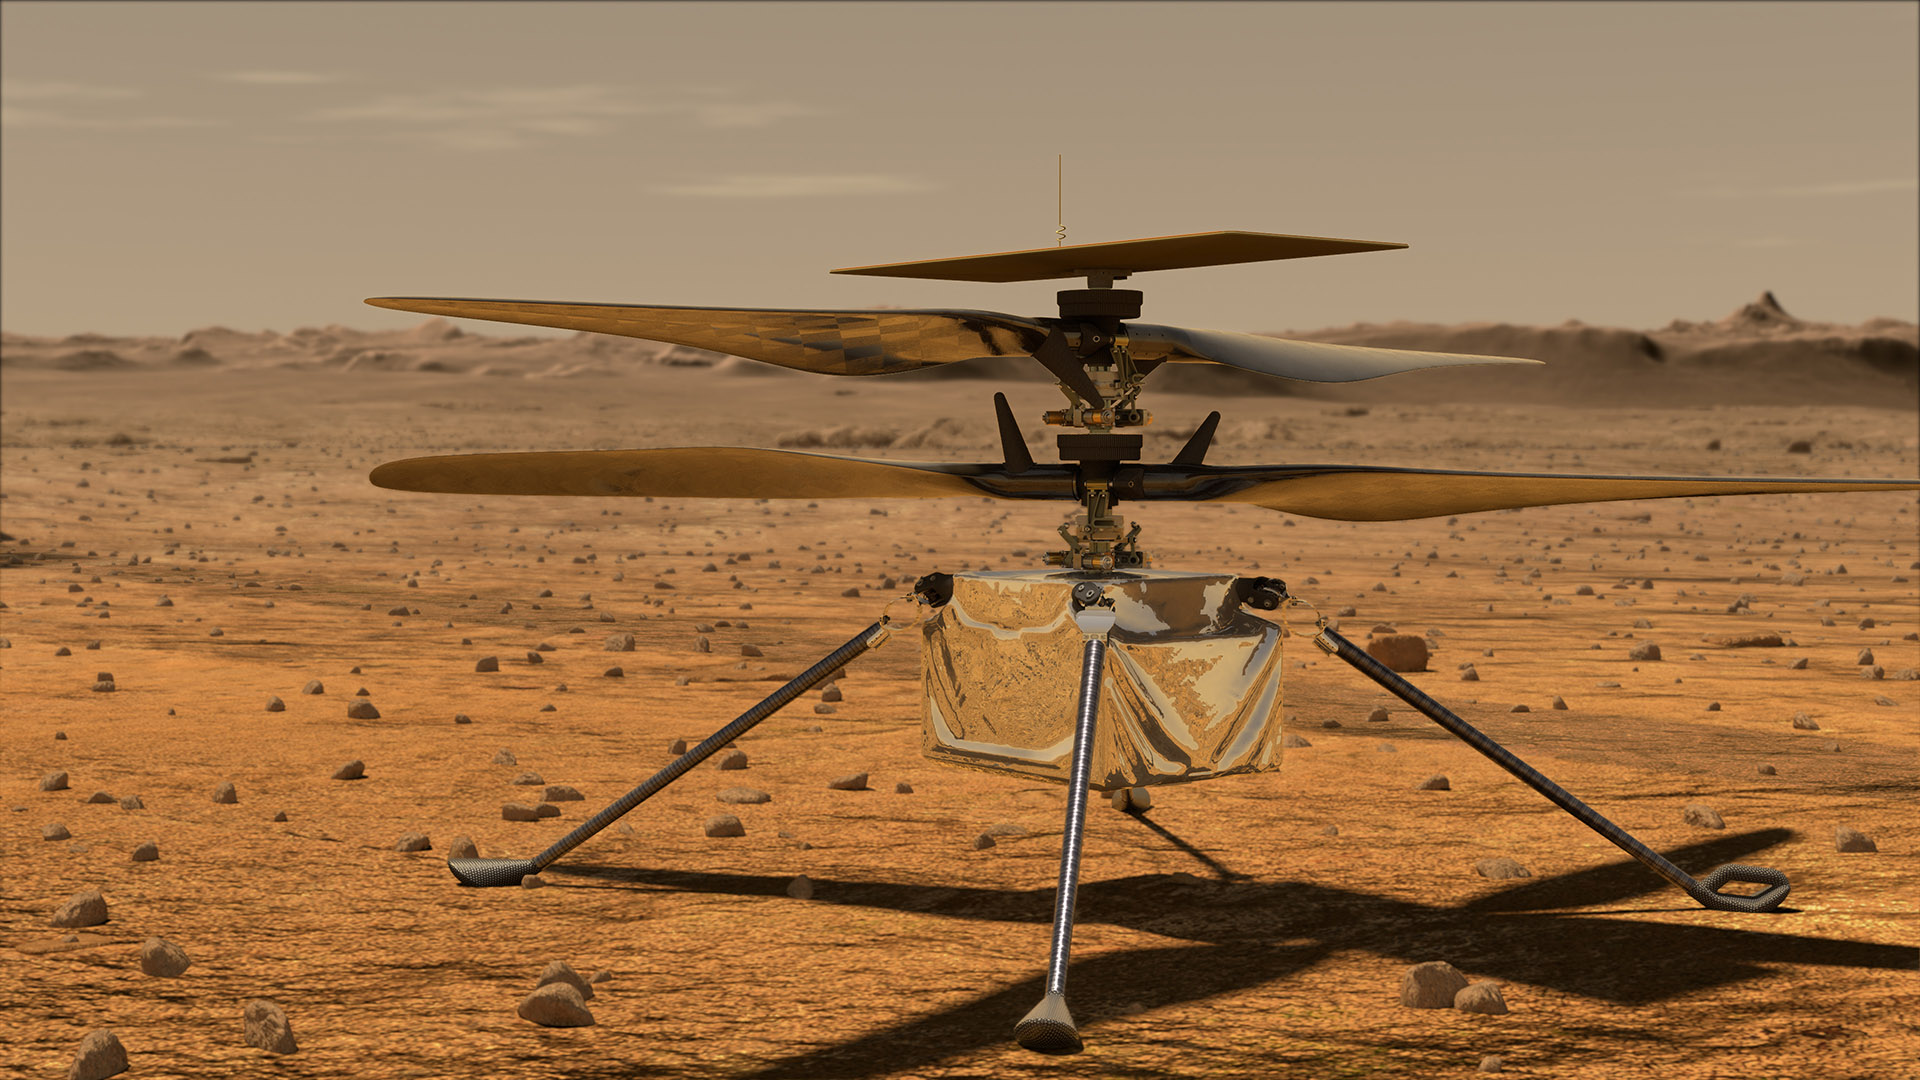 Watch with us as Ingenuity takes flight on Mars!